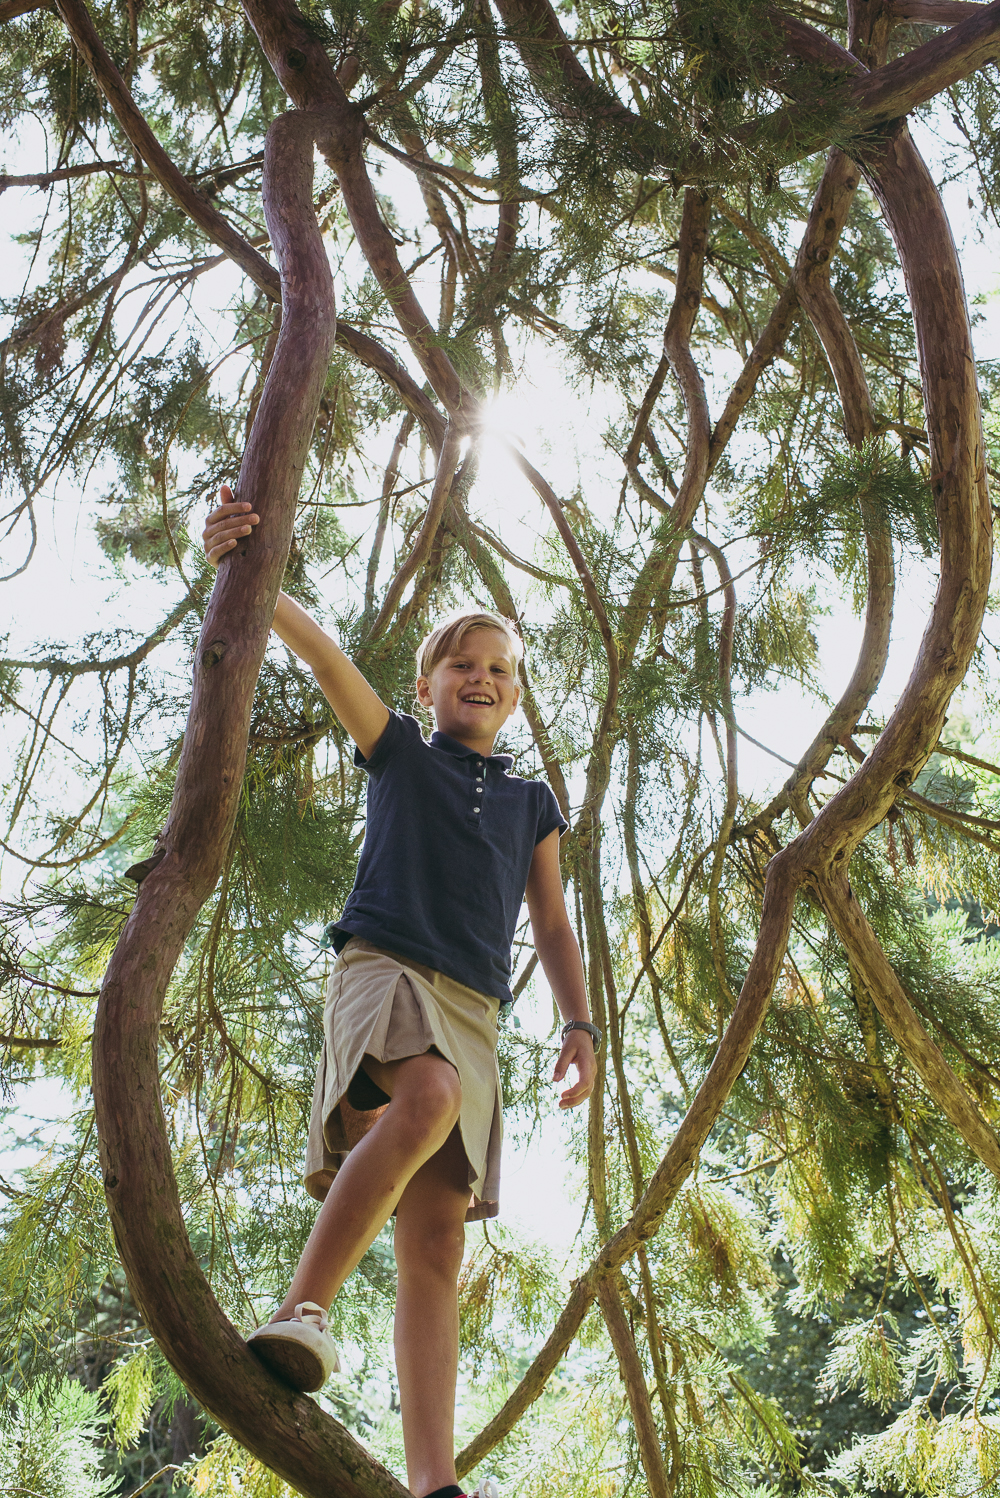 Girl climbing a tree = awesome girl power. Love it!